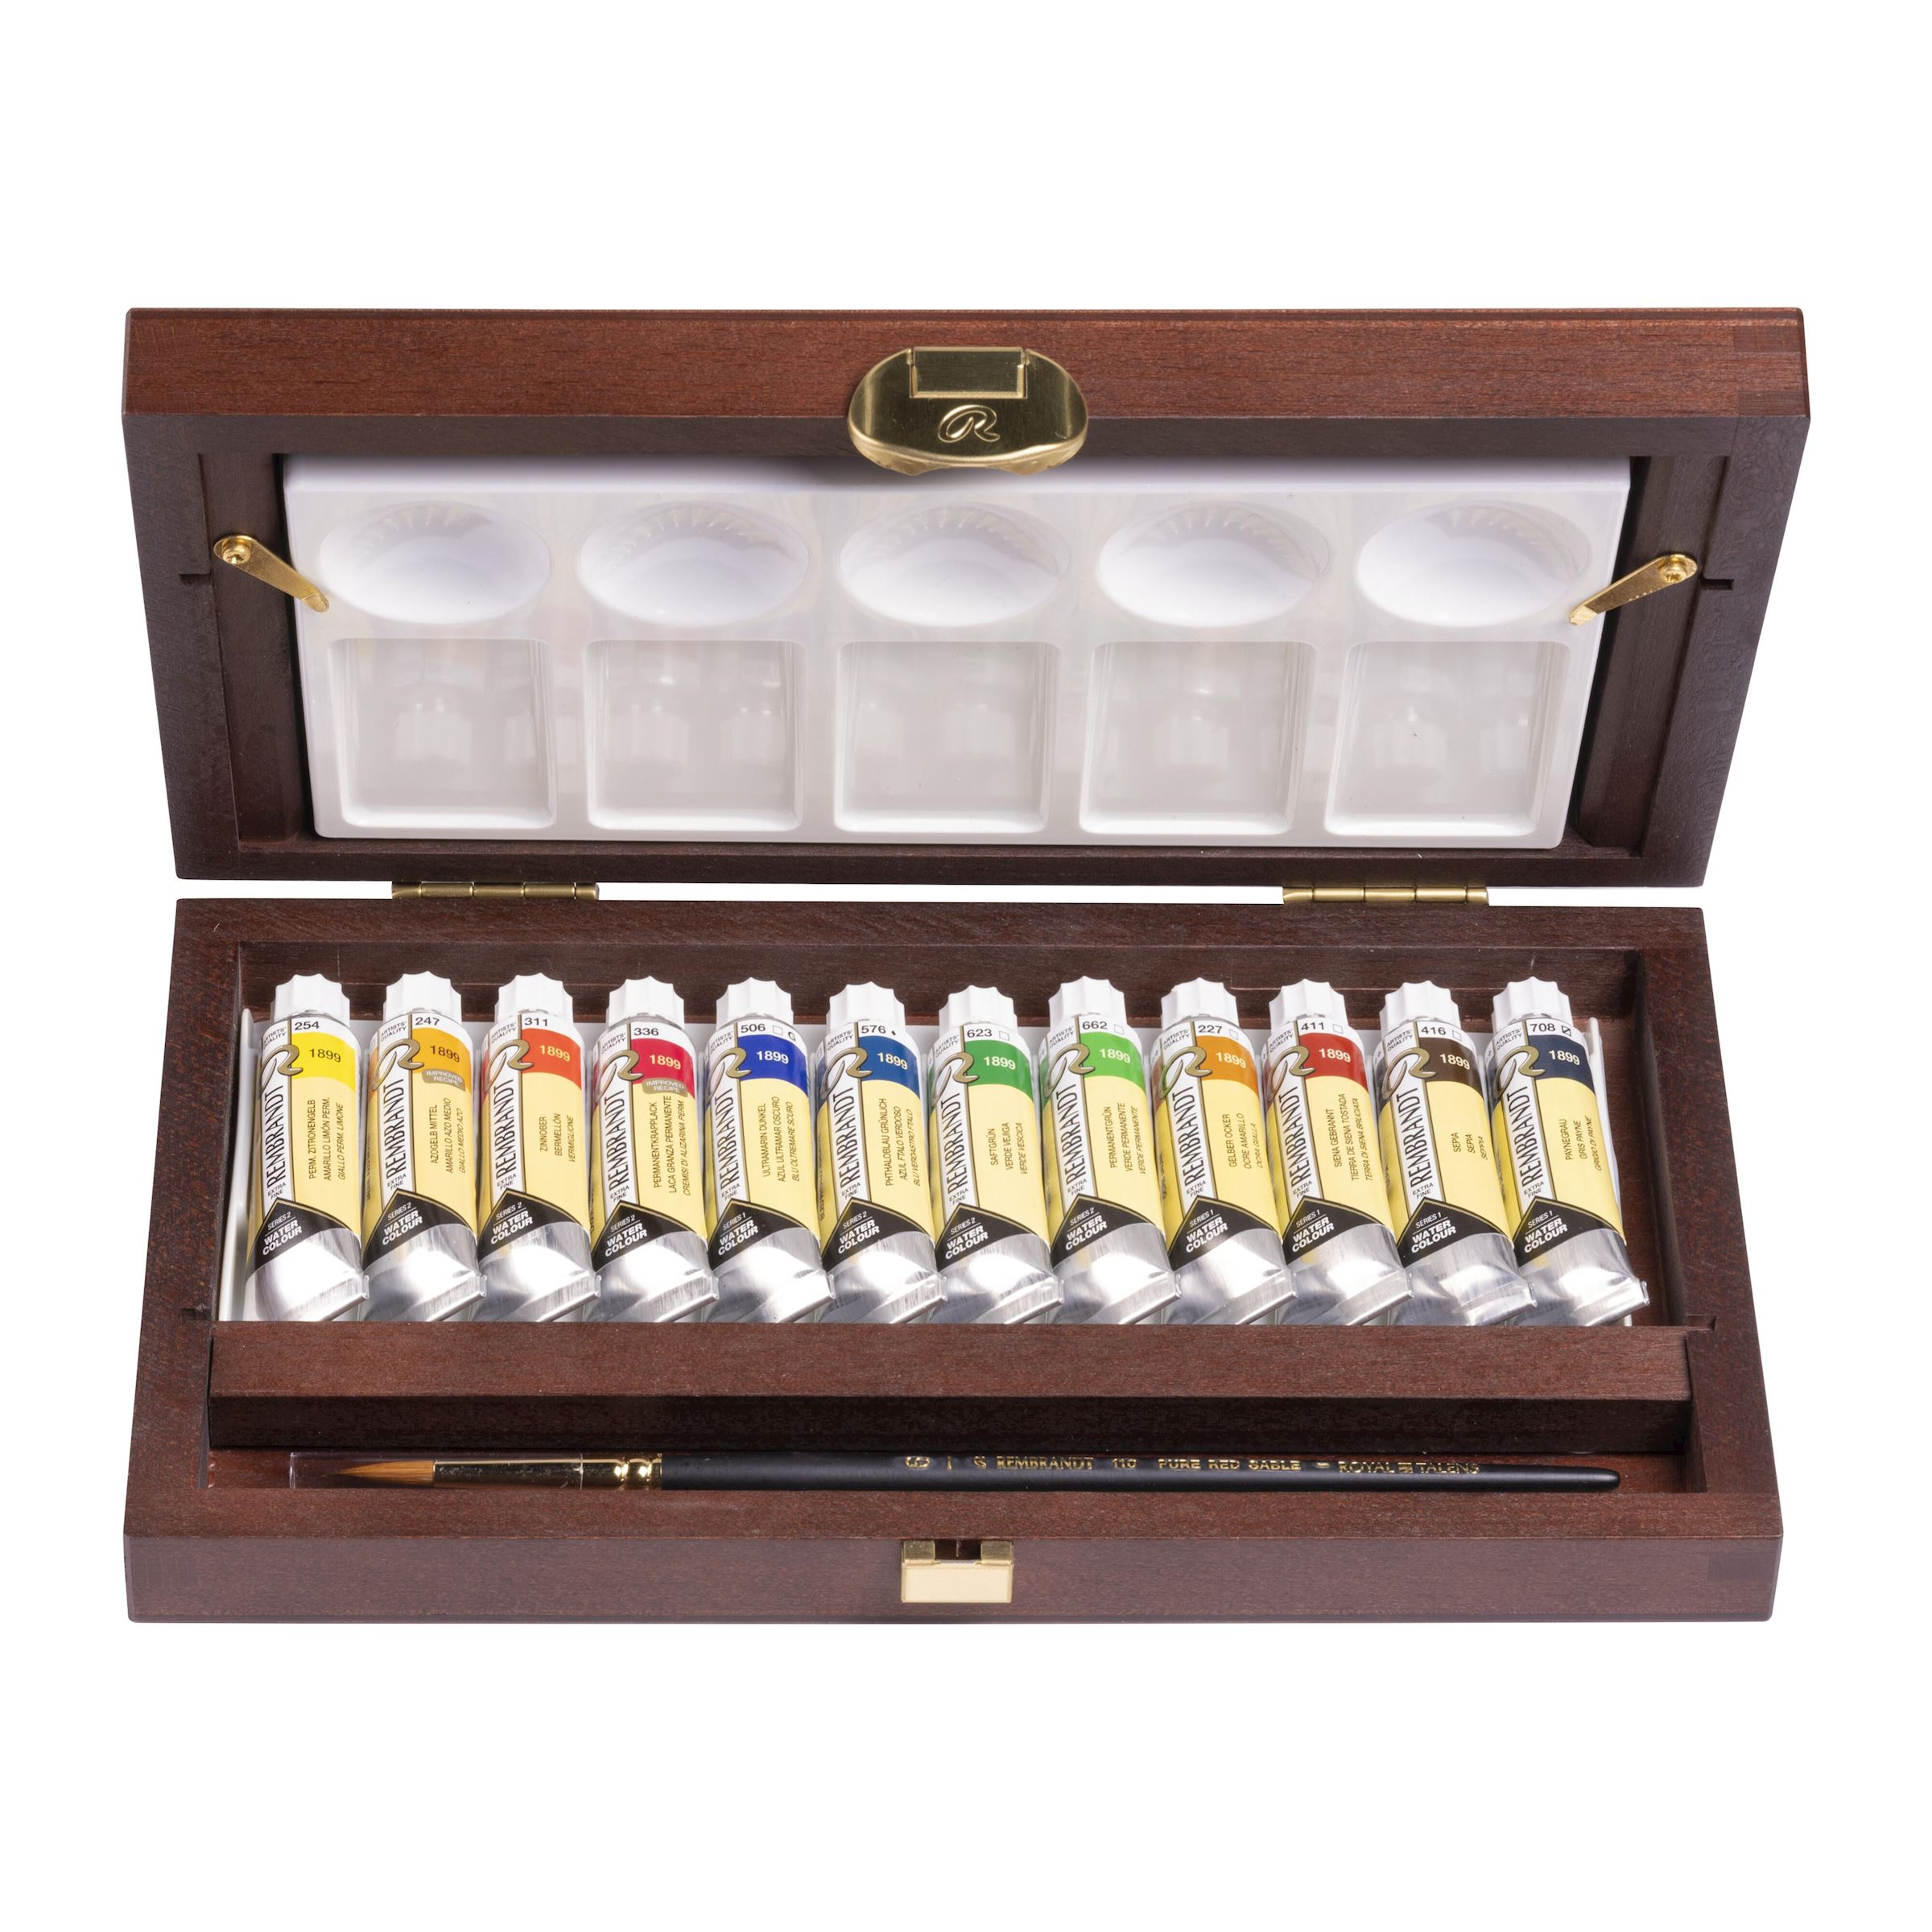 Professionelles Aquarellfarben Set Im Traditionellen Holzkasten